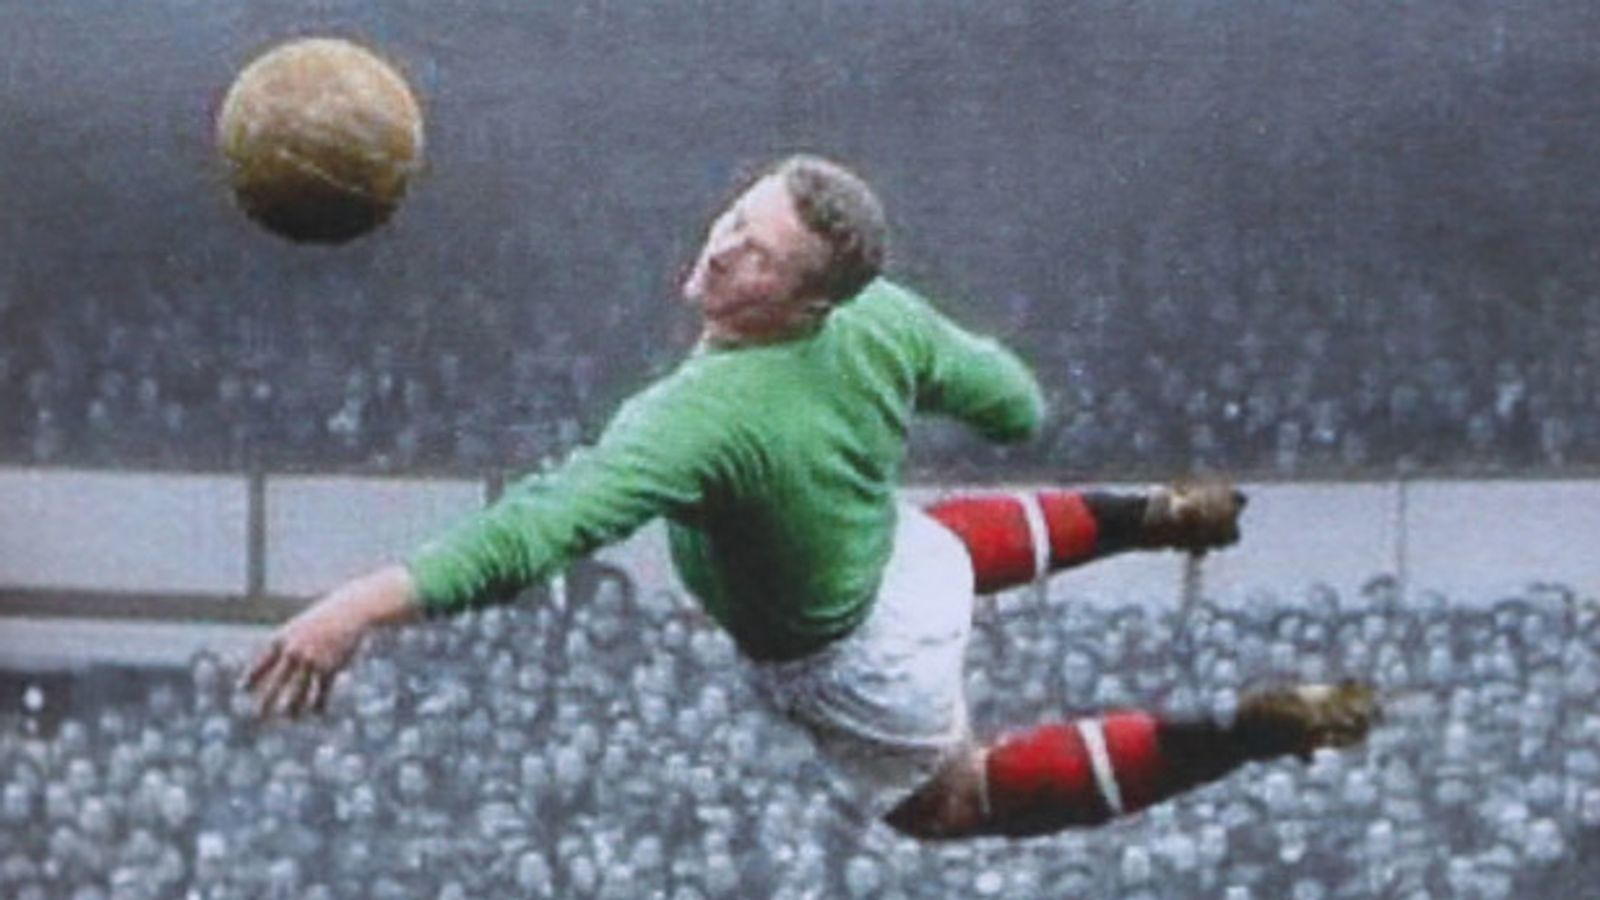 Harry Gregg: Manchester United great is called a 'one off' at his funeral